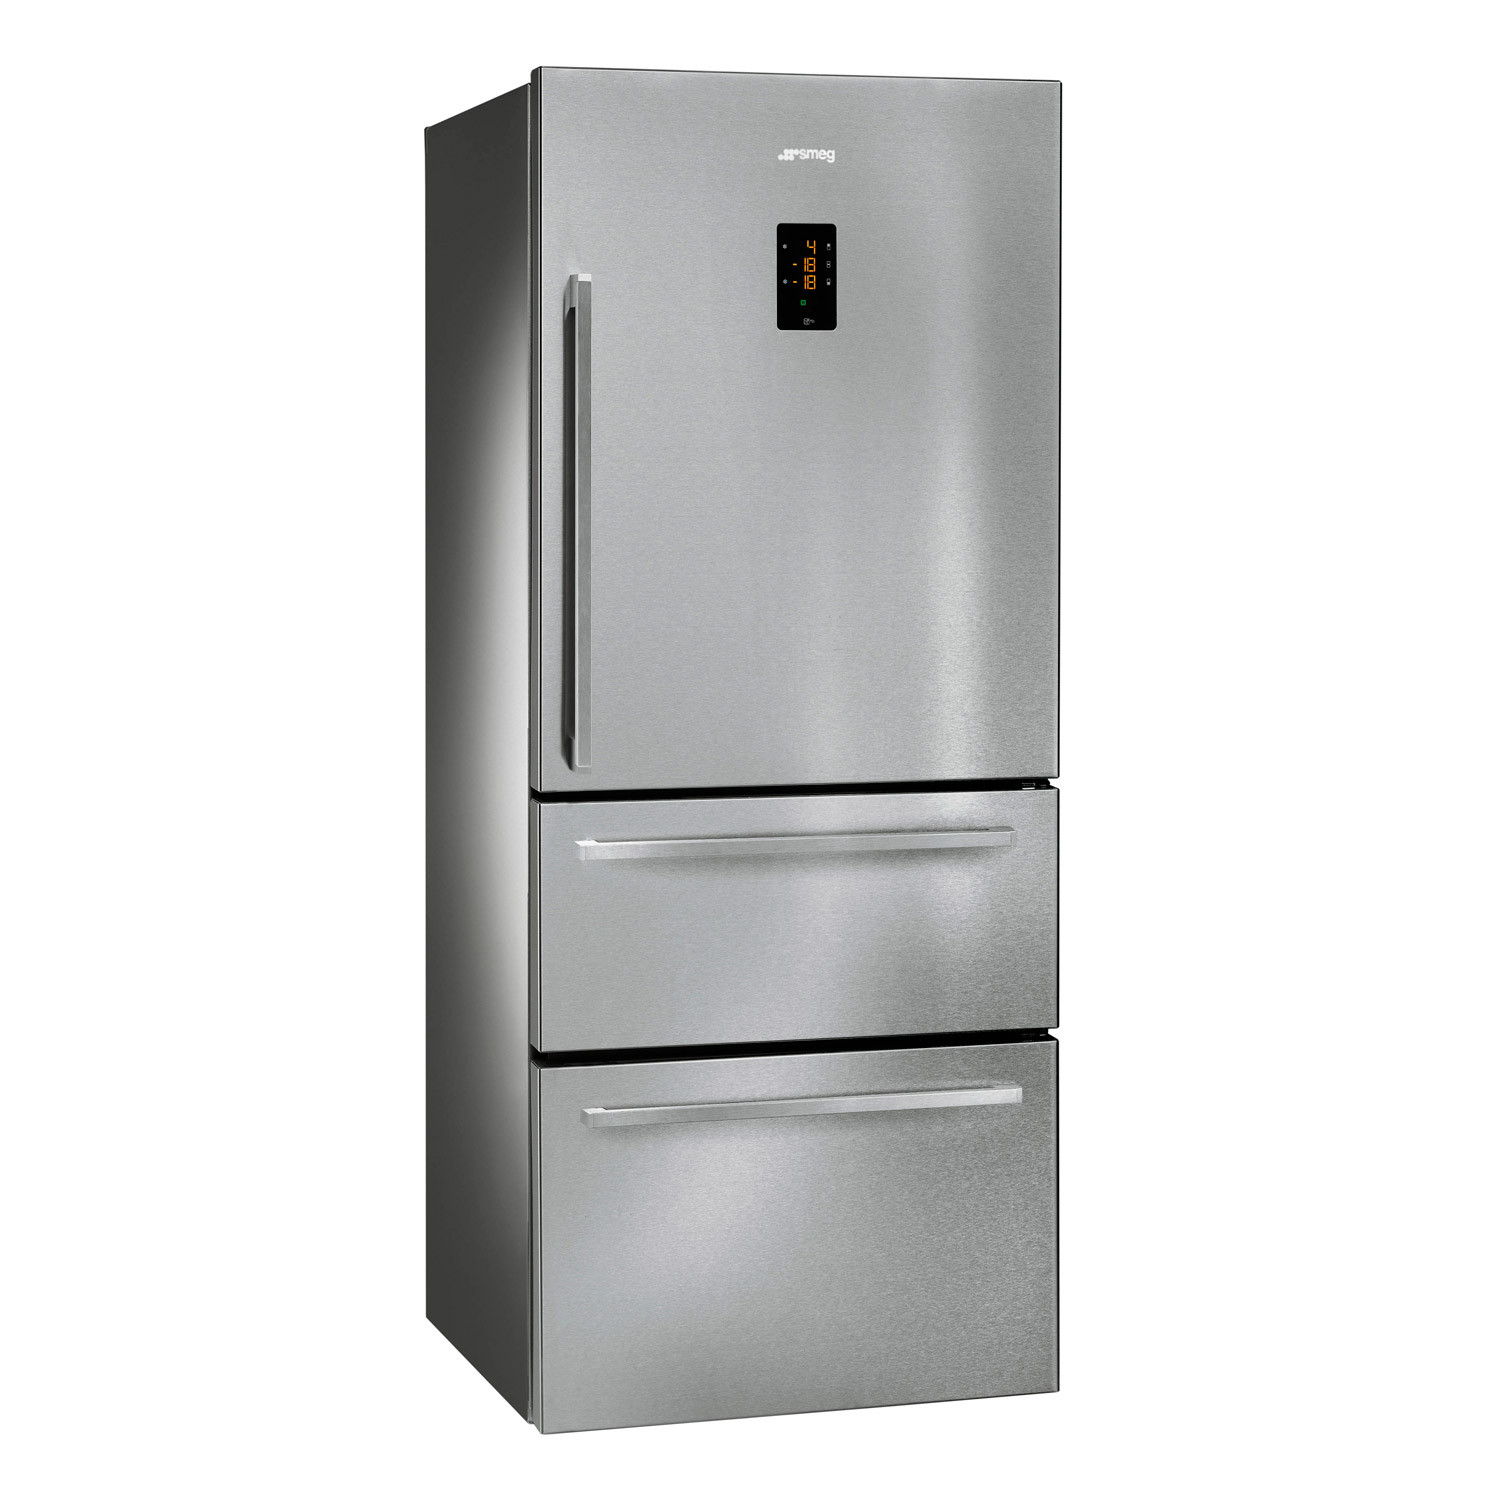 Smeg FT41BXE Stainless Steel 530 Litre A+ Rated Fridge Freezer